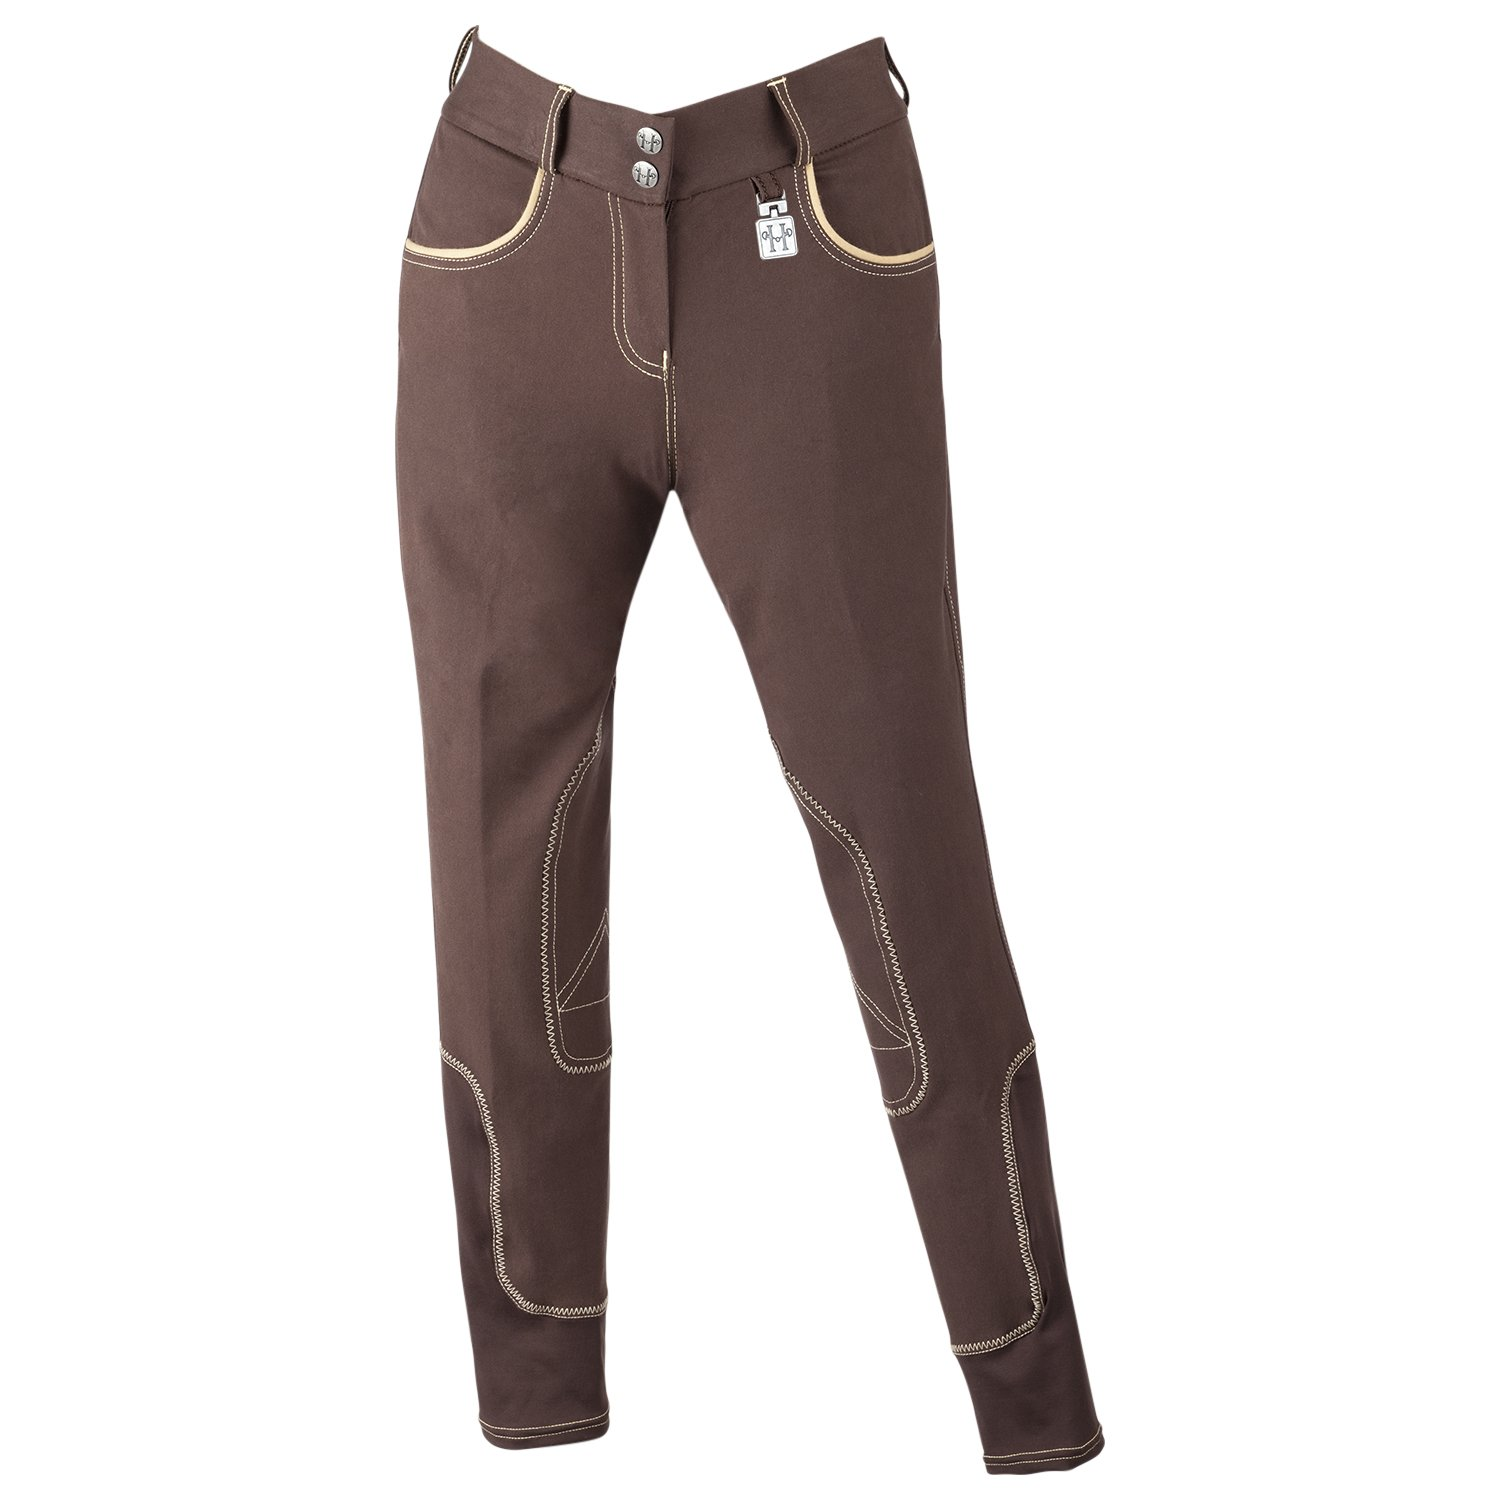 Huntley Equestrian Riding Pants with Tan Welt Pockets 01032-Brown-34-P